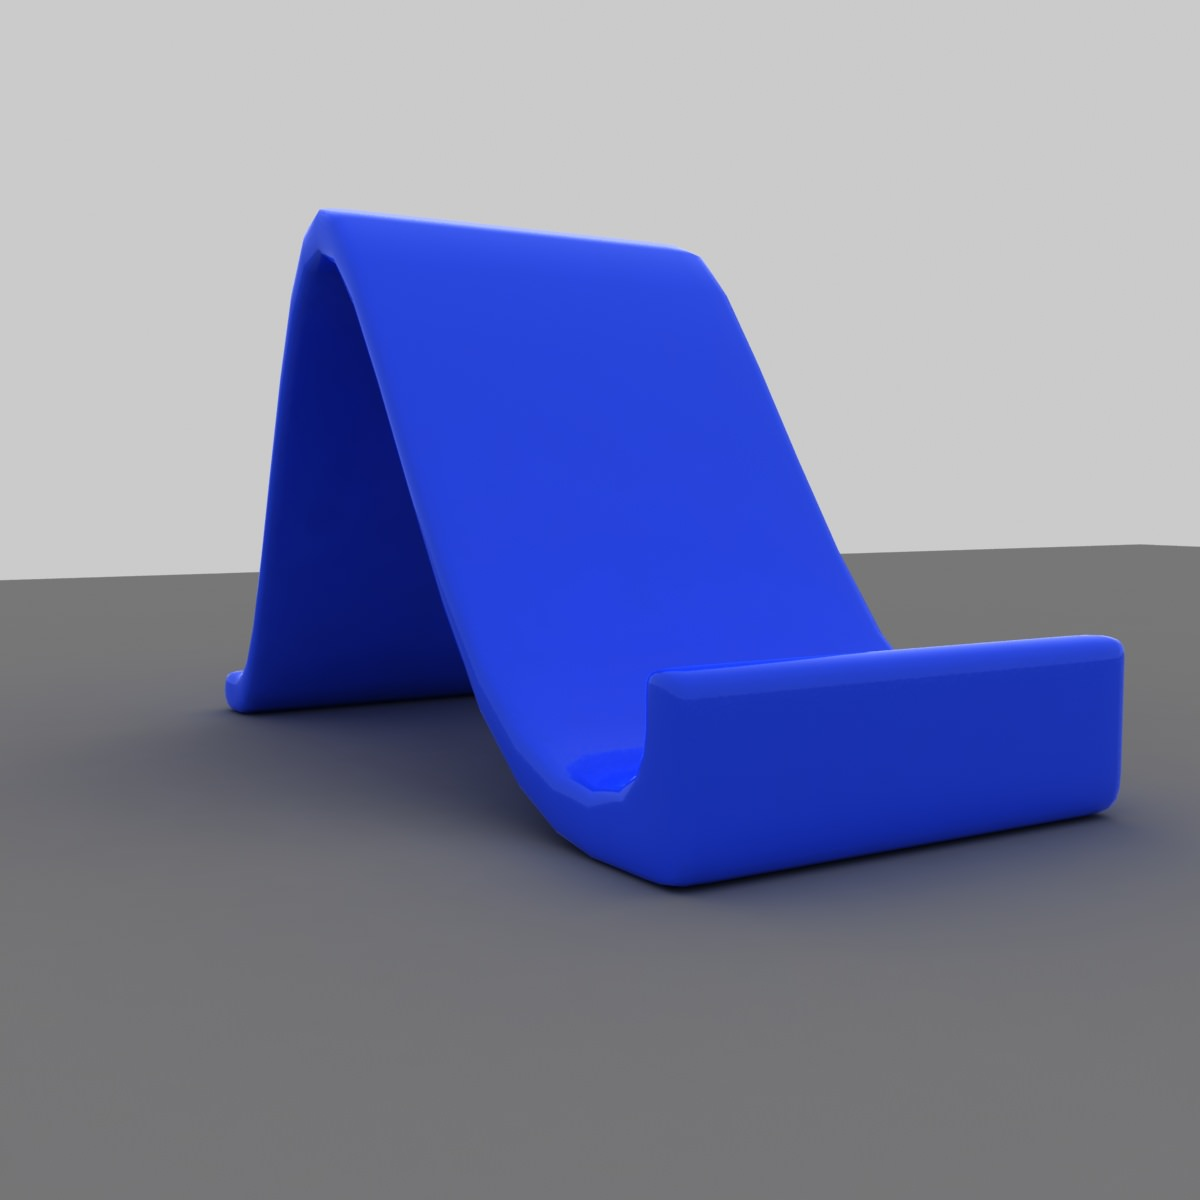 Standard Tablet Or Phone Holder 3d Model 3d Printable Stl